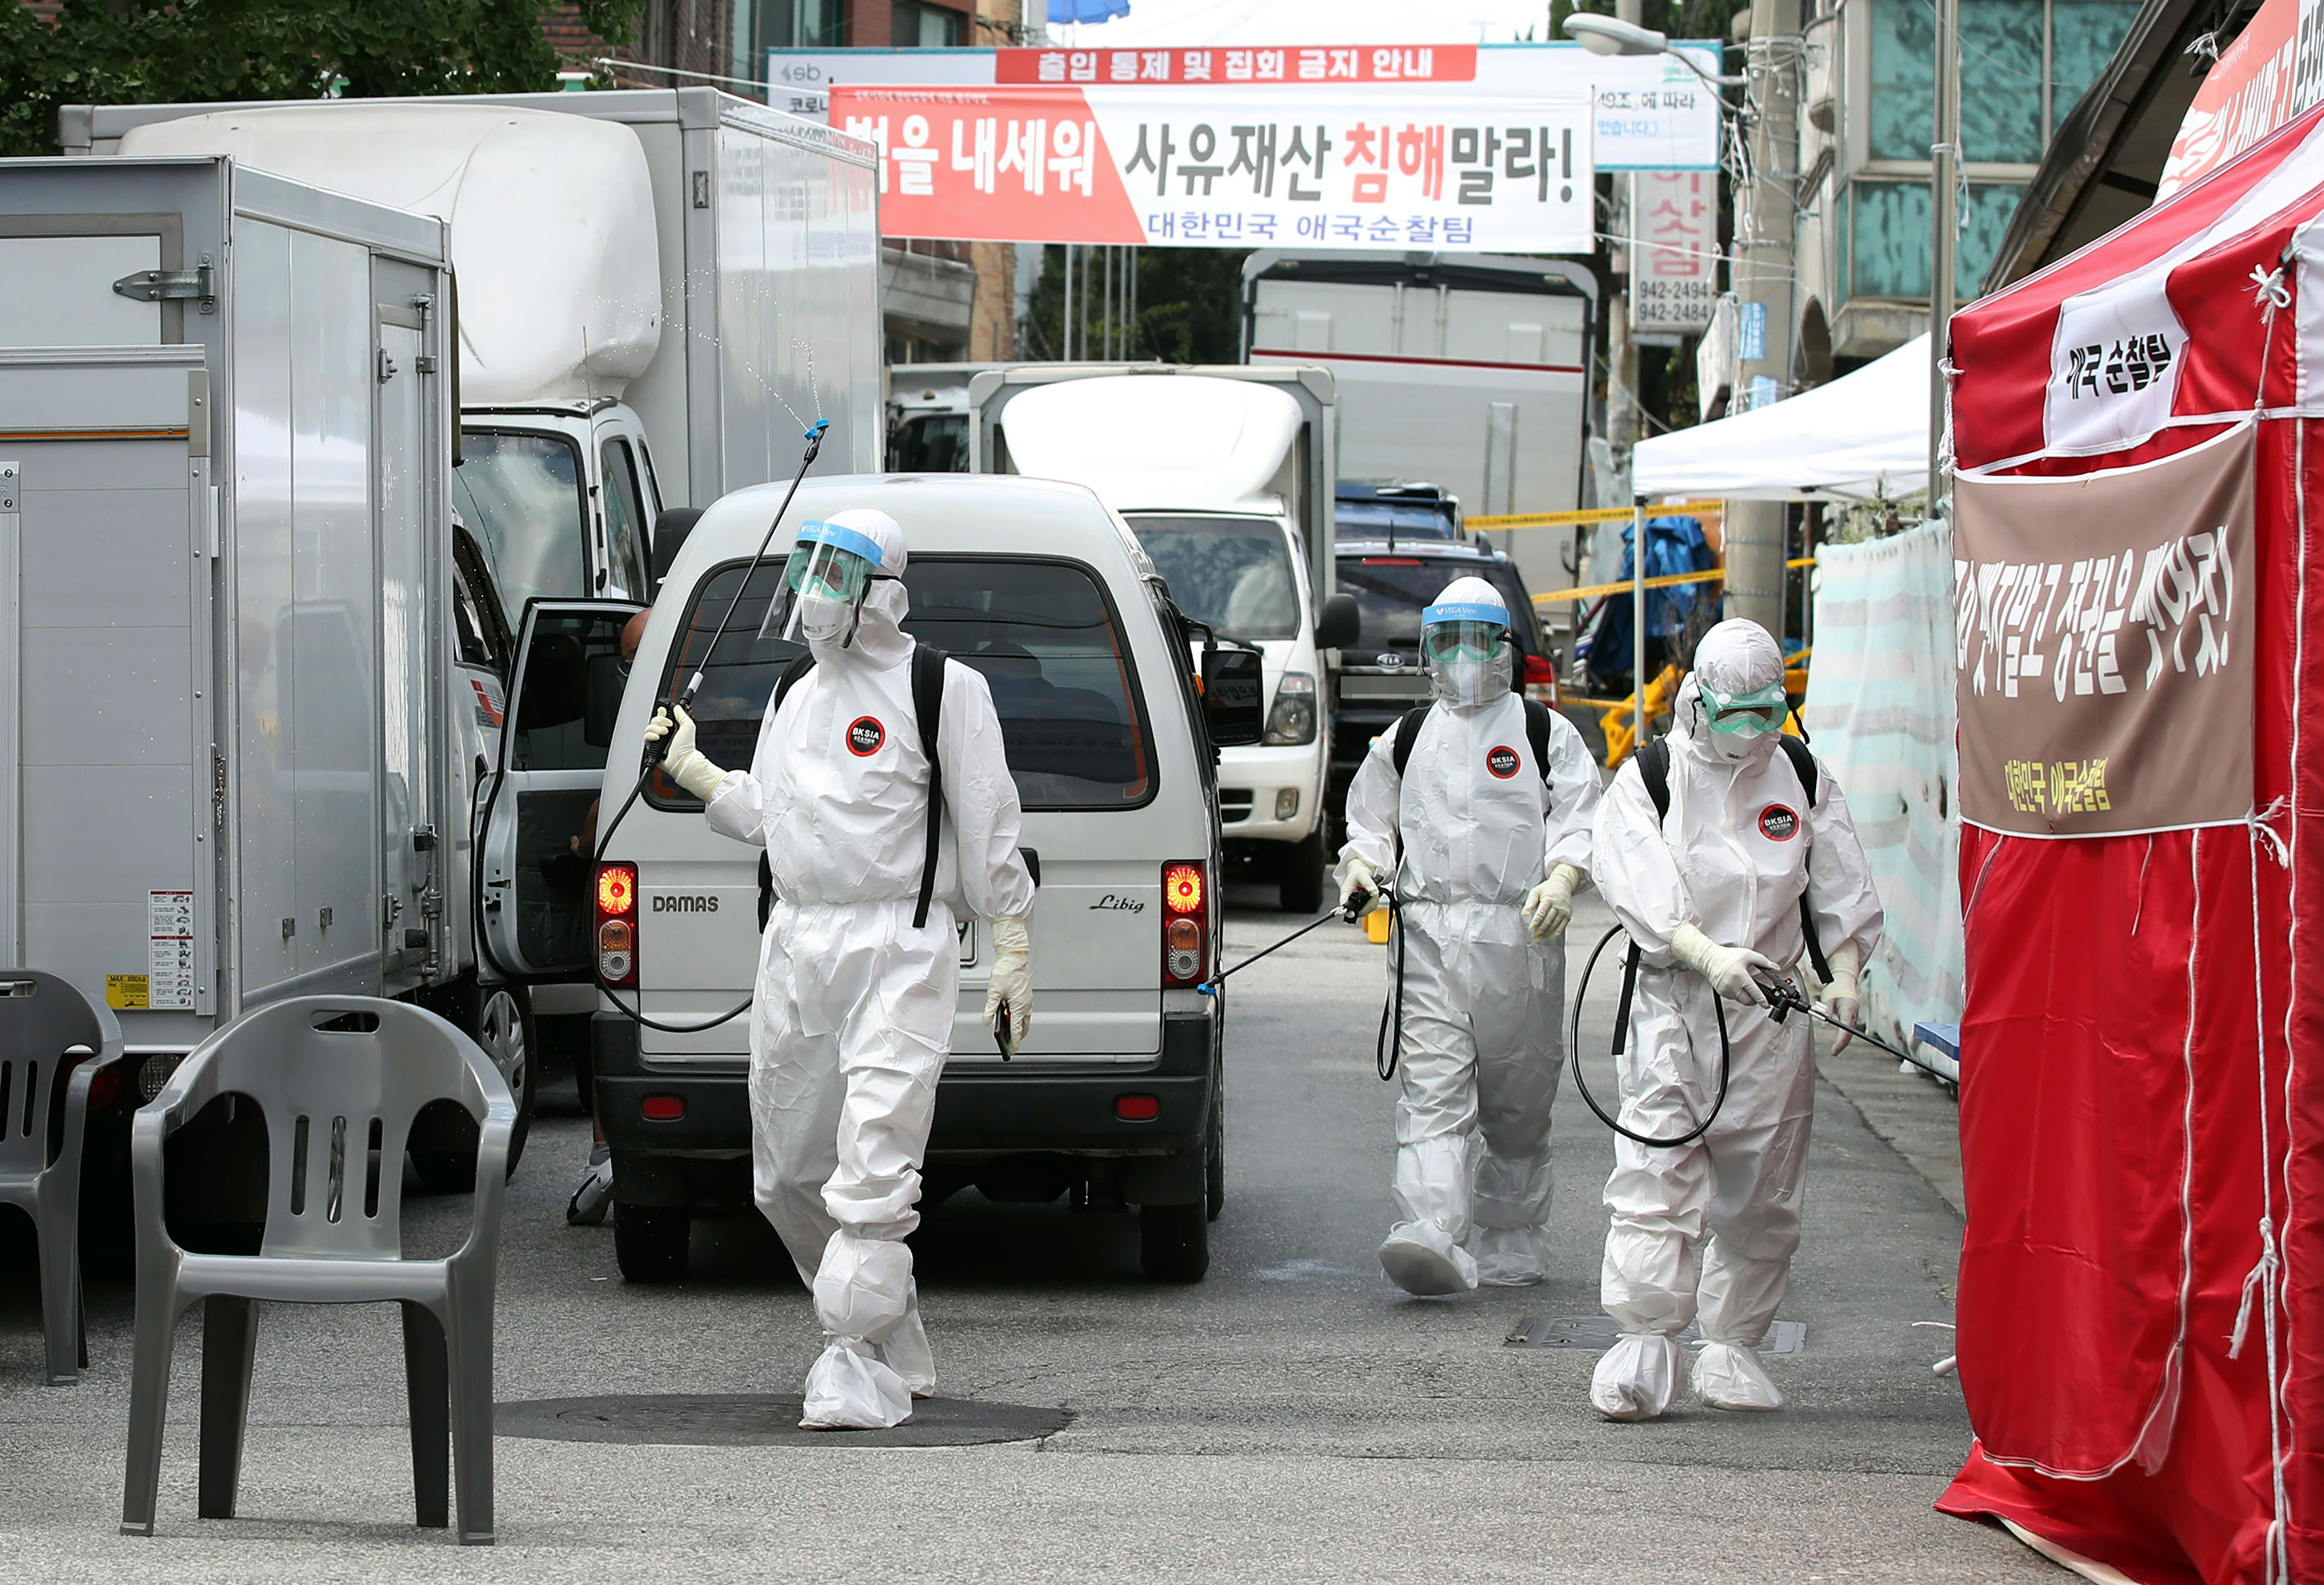 Public officials spray disinfectant near the Sarang-jeil church on August 16 in Seoul, South Korea.